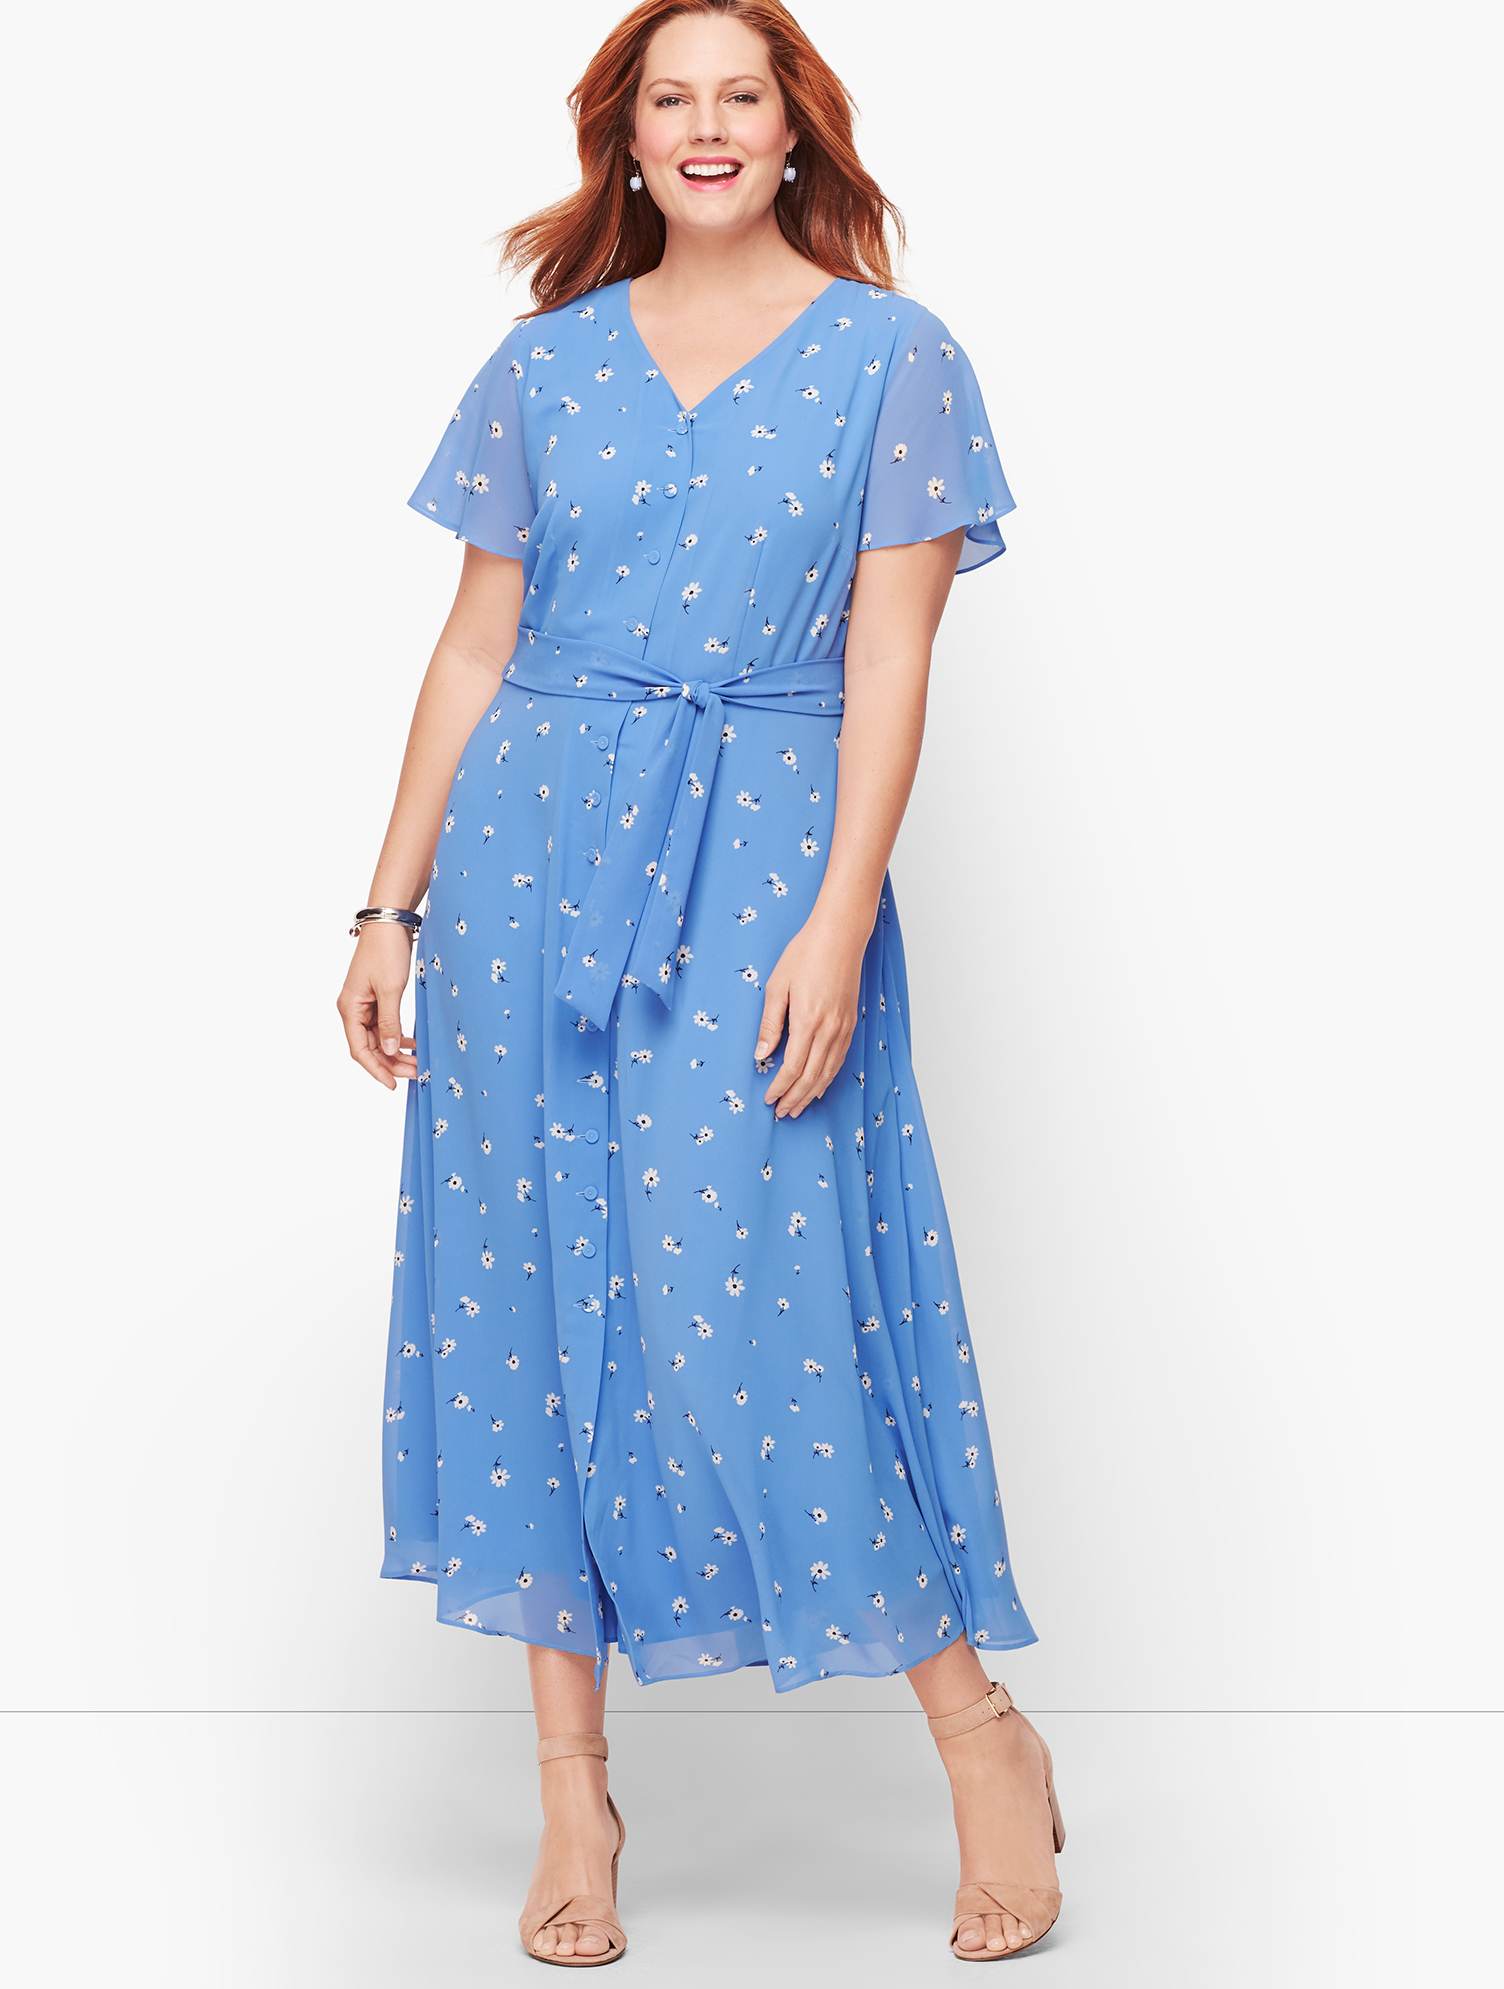 1930s Style Clothing and Fashion Scattered Floral Tie Front Midi Dress - Blue Wave - 22 Talbots $129.99 AT vintagedancer.com